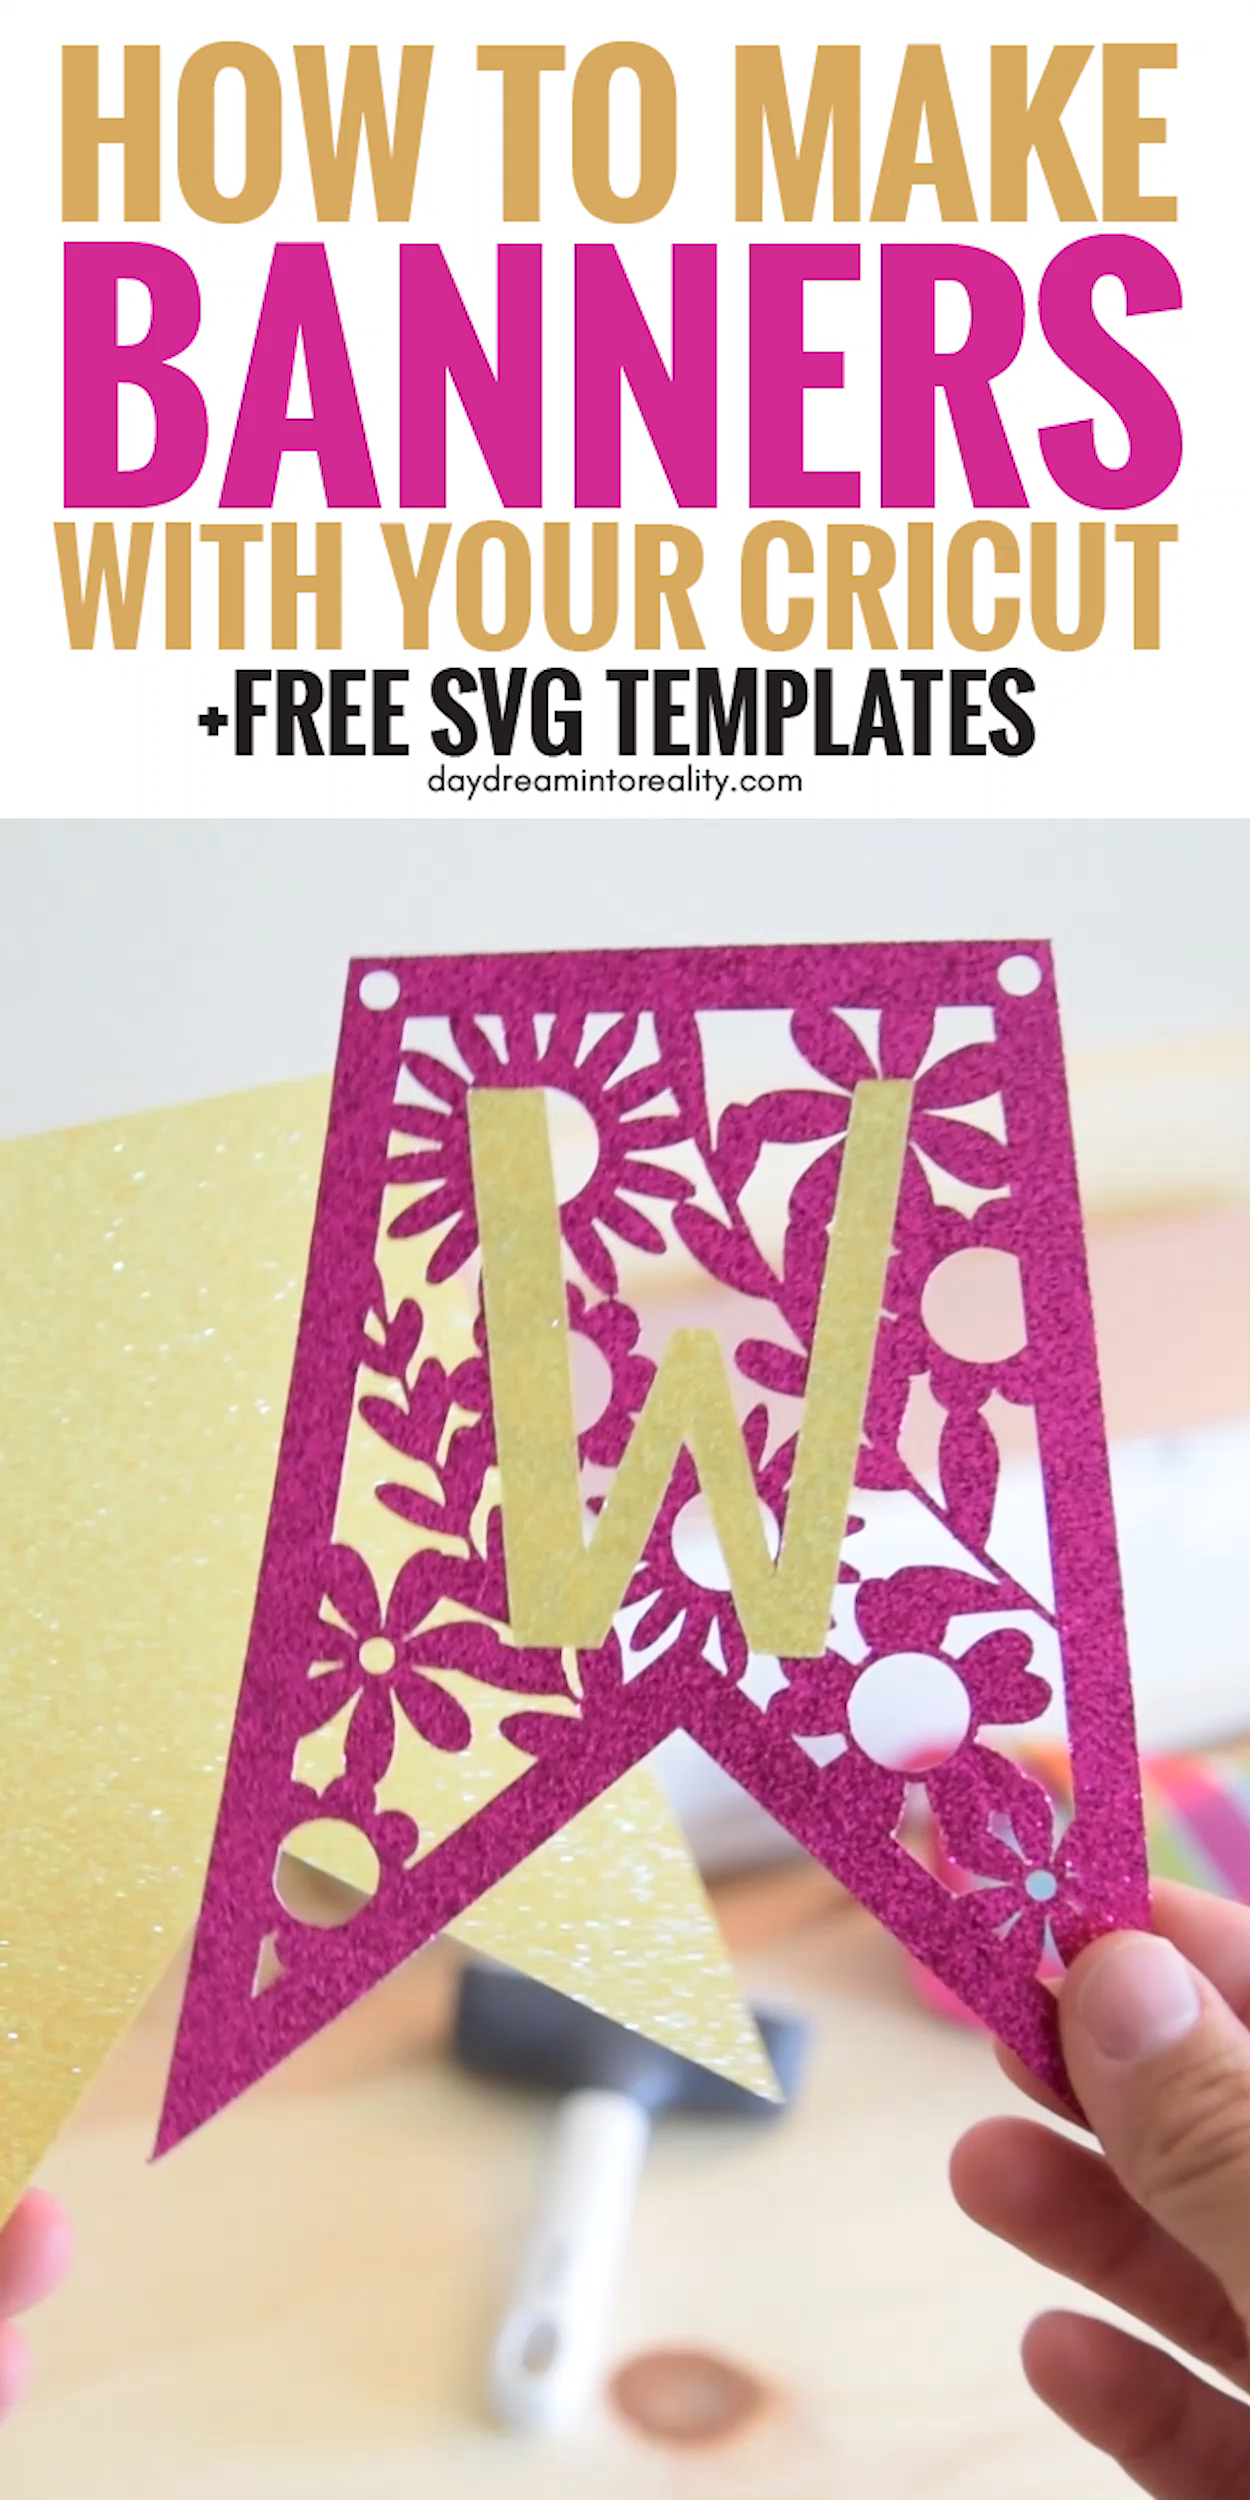 Make Spectacular Banners with your Cricut (Free SVG included)